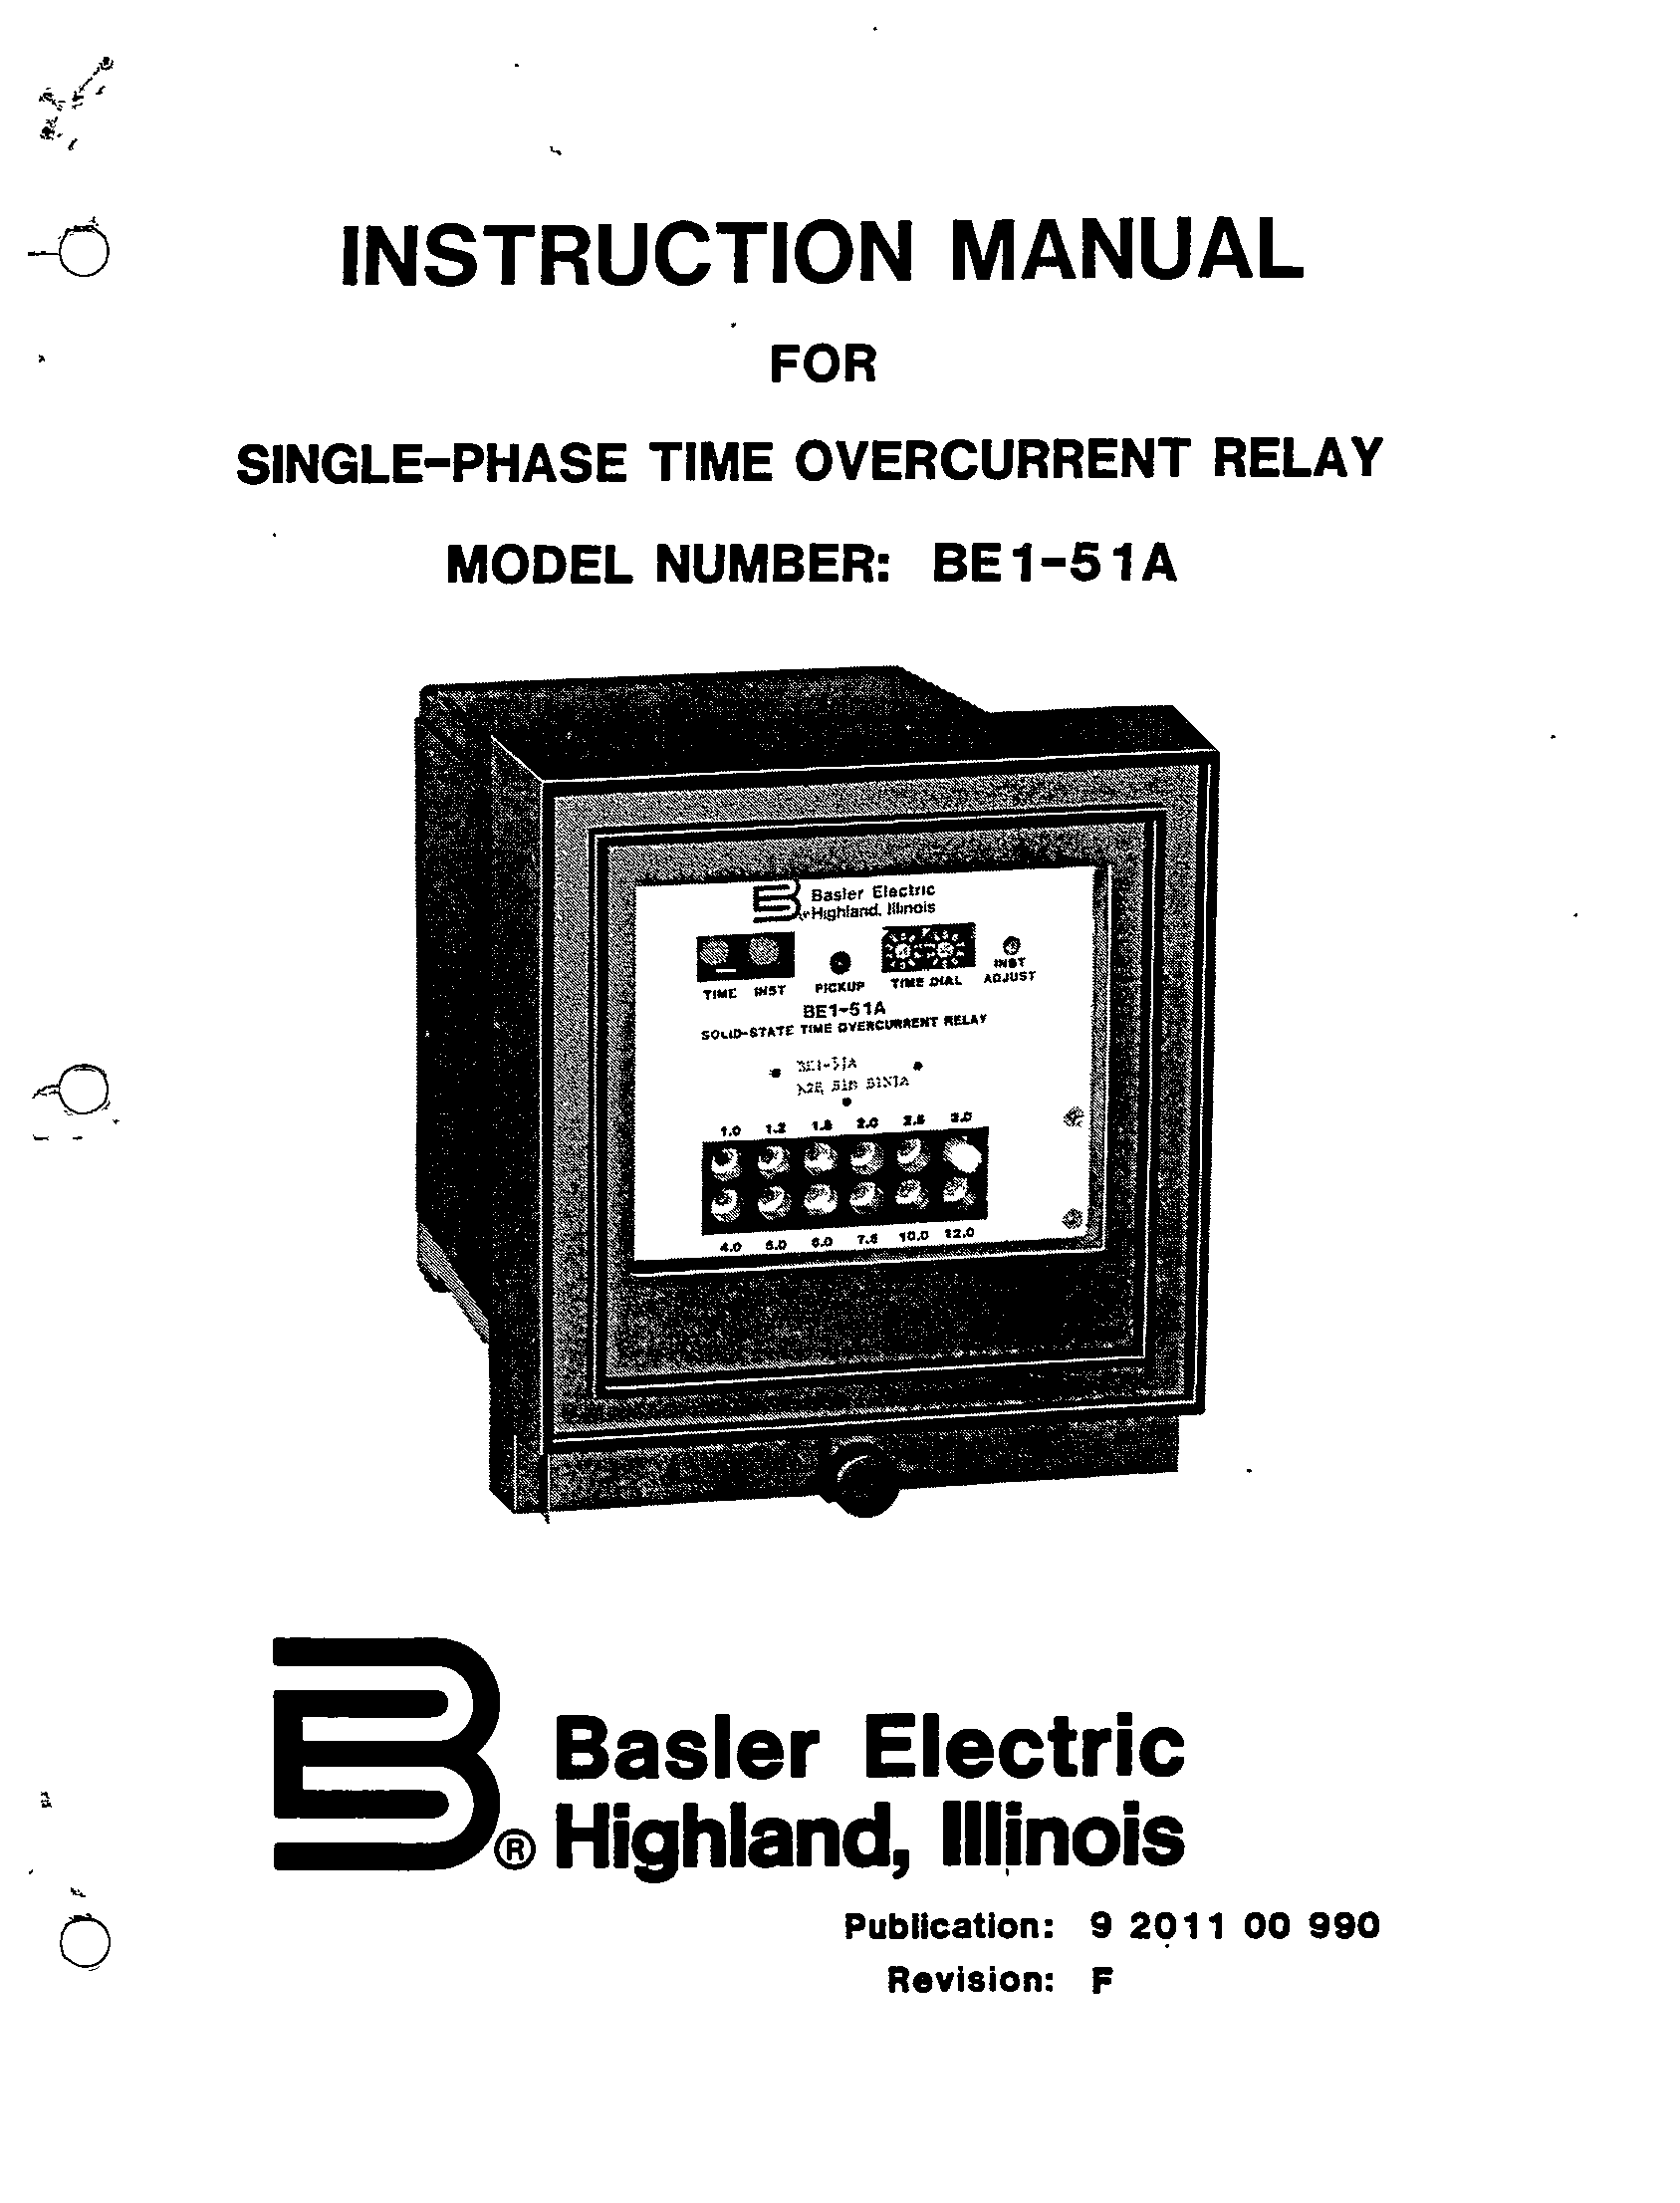 SINGLE-PHASE TIME OVERCURRENT RELAY MODEL NUMBER BE1-51A